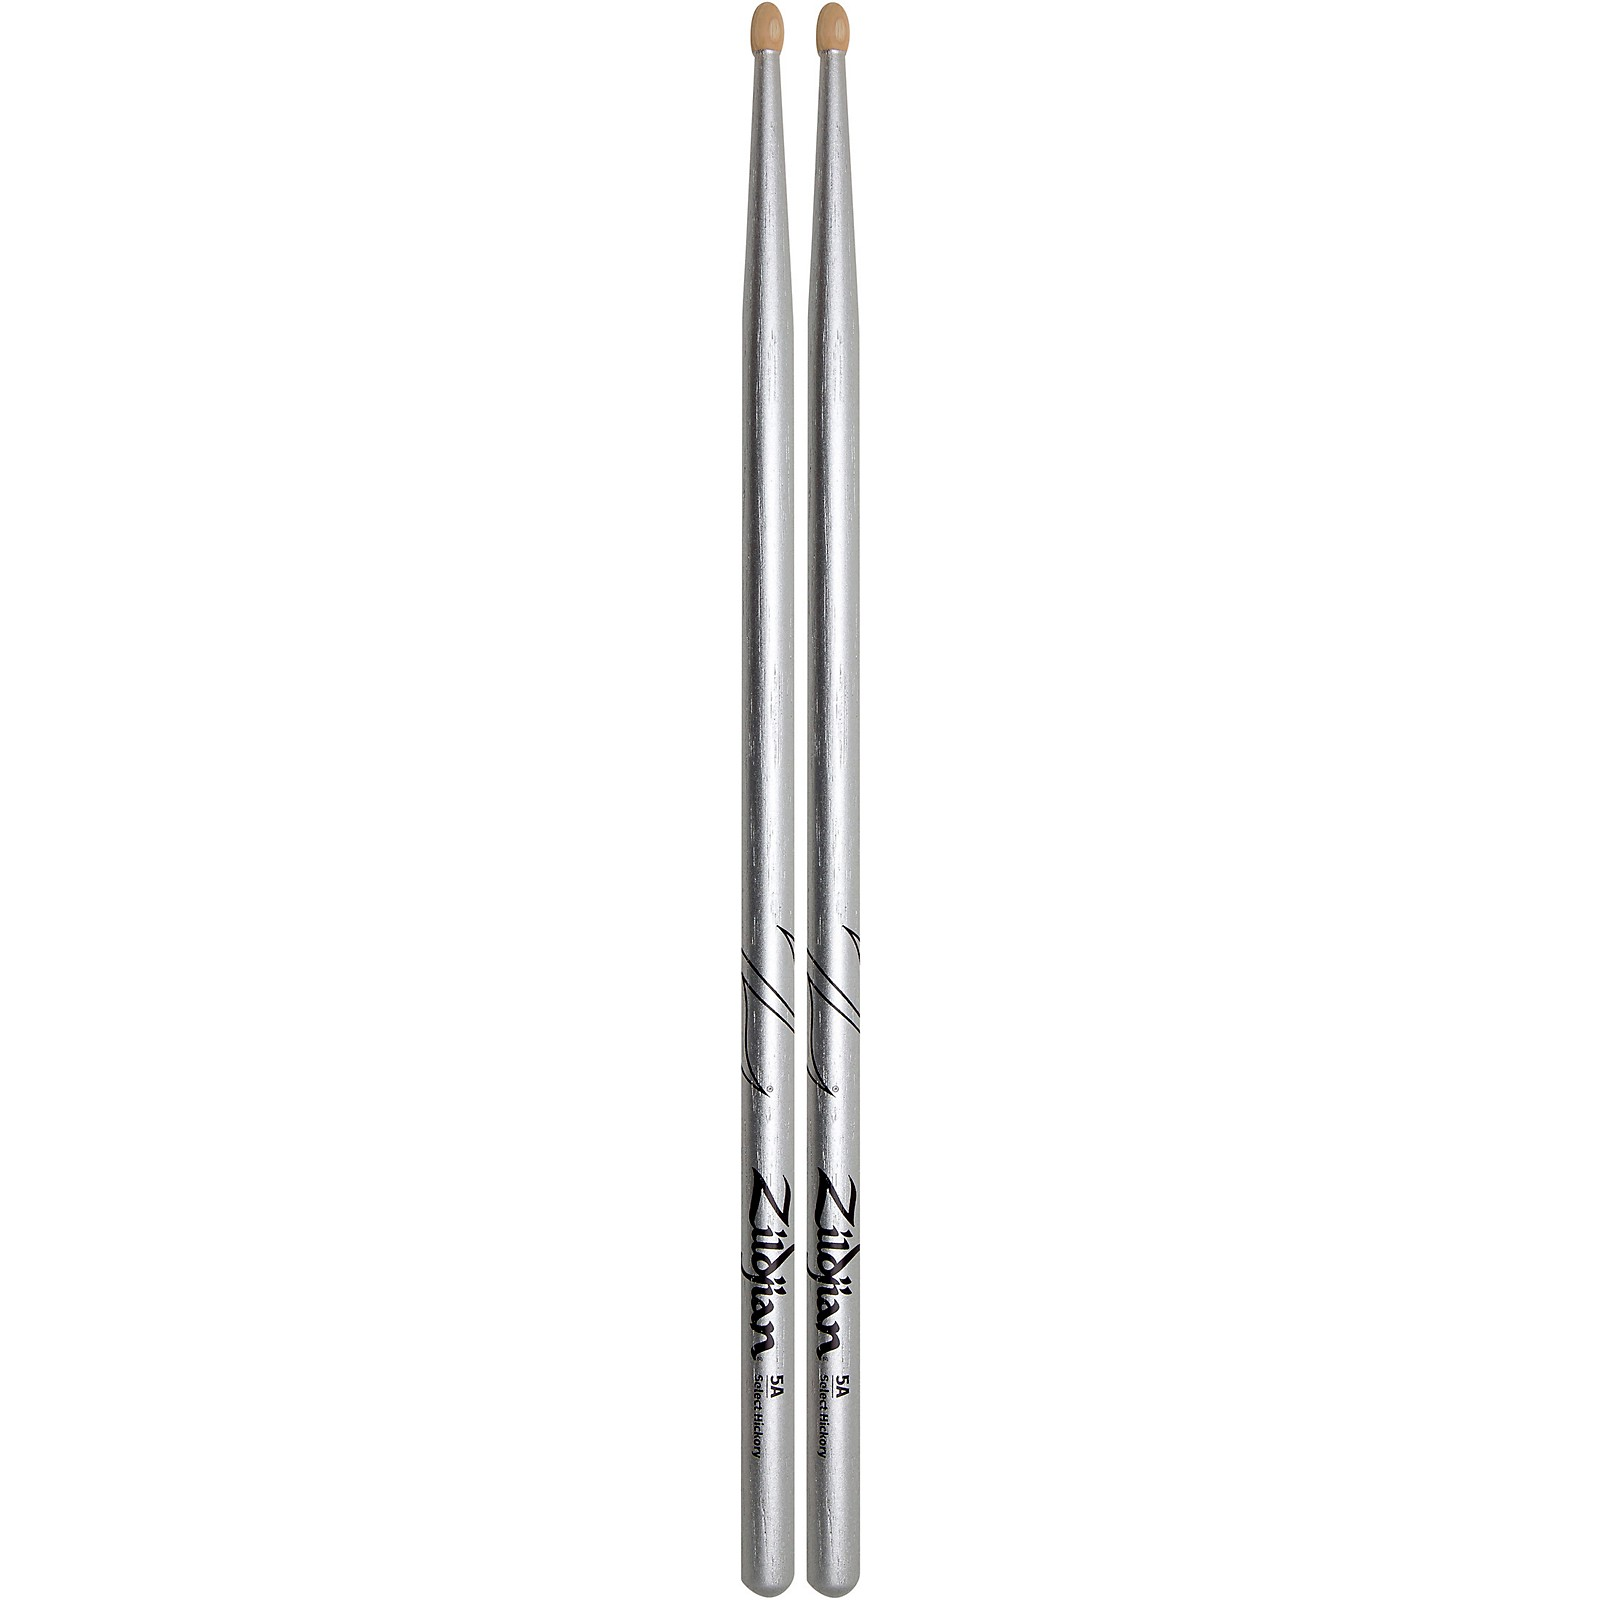 Zildjian Chroma Silver Drum Sticks